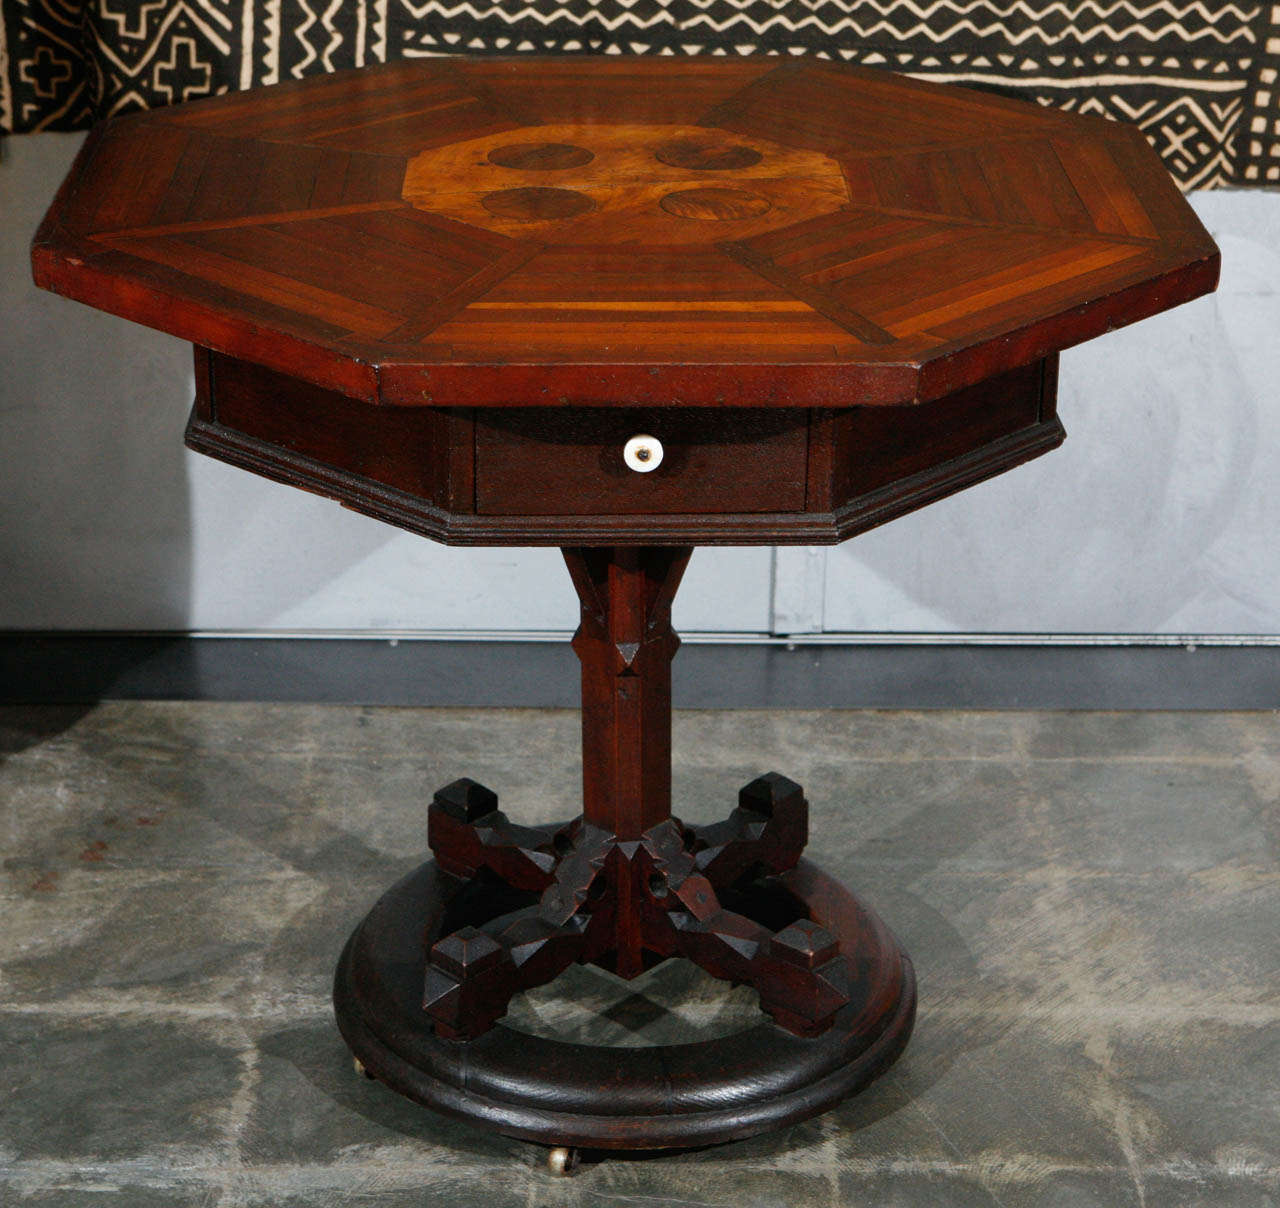 American Folk Art Table Signed and Dated 1881 In Good Condition For Sale In Culver City, CA